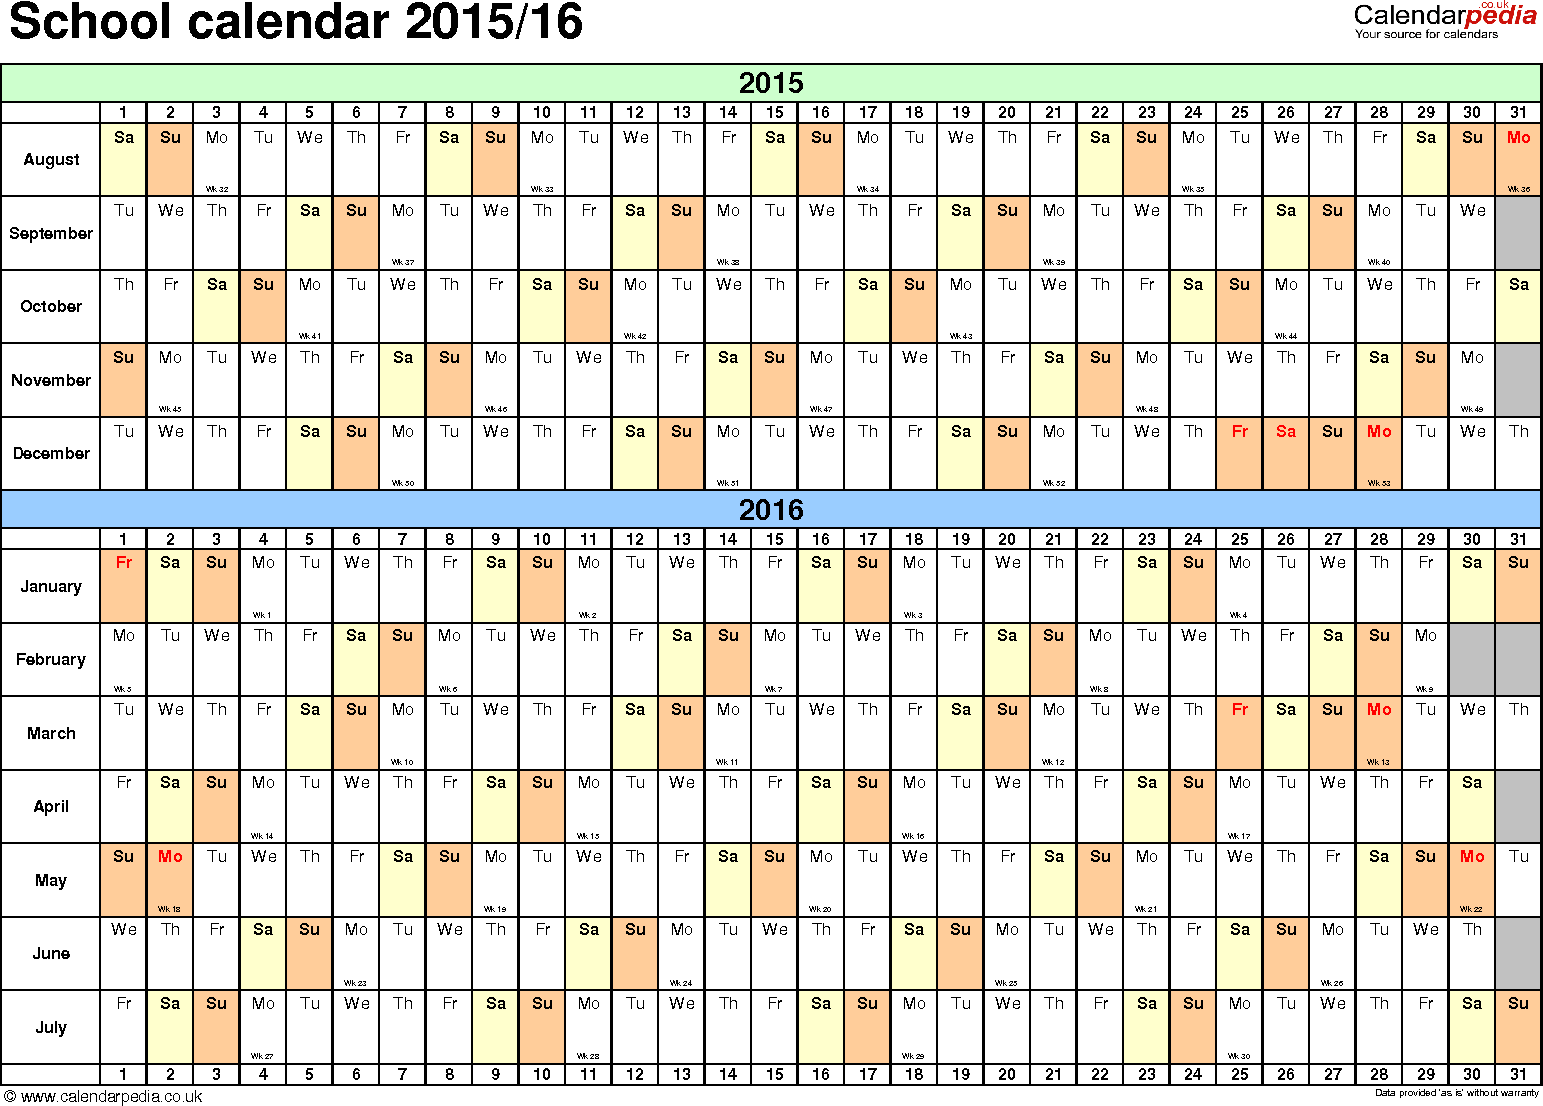 Template 2: School year calendars 2015/16 as Word template, landscape orientation, A4, 1 page, months horizontally, days vertically, with UK bank holidays and week numbers